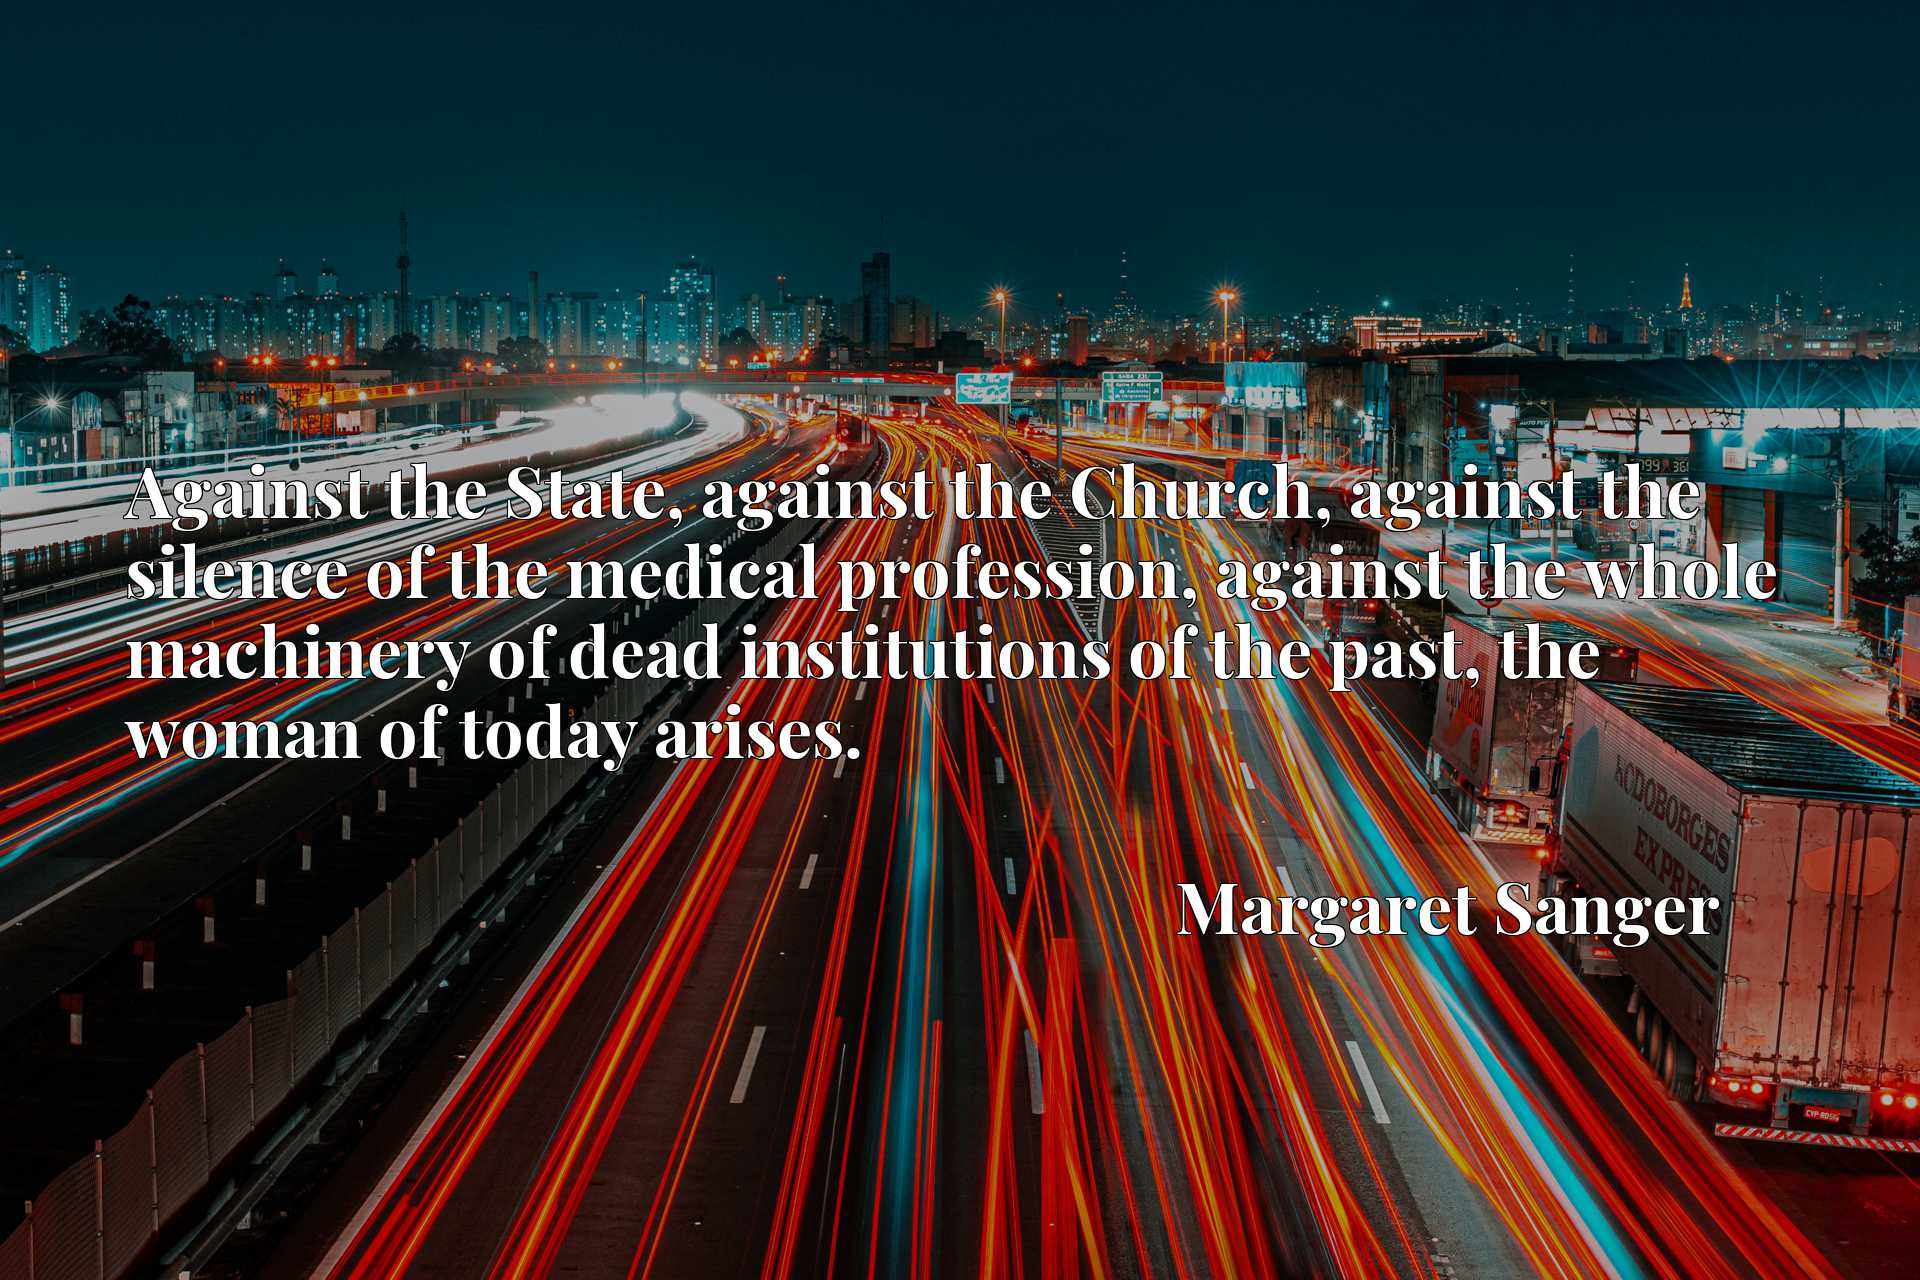 Against the State, against the Church, against the silence of the medical profession, against the whole machinery of dead institutions of the past, the woman of today arises.